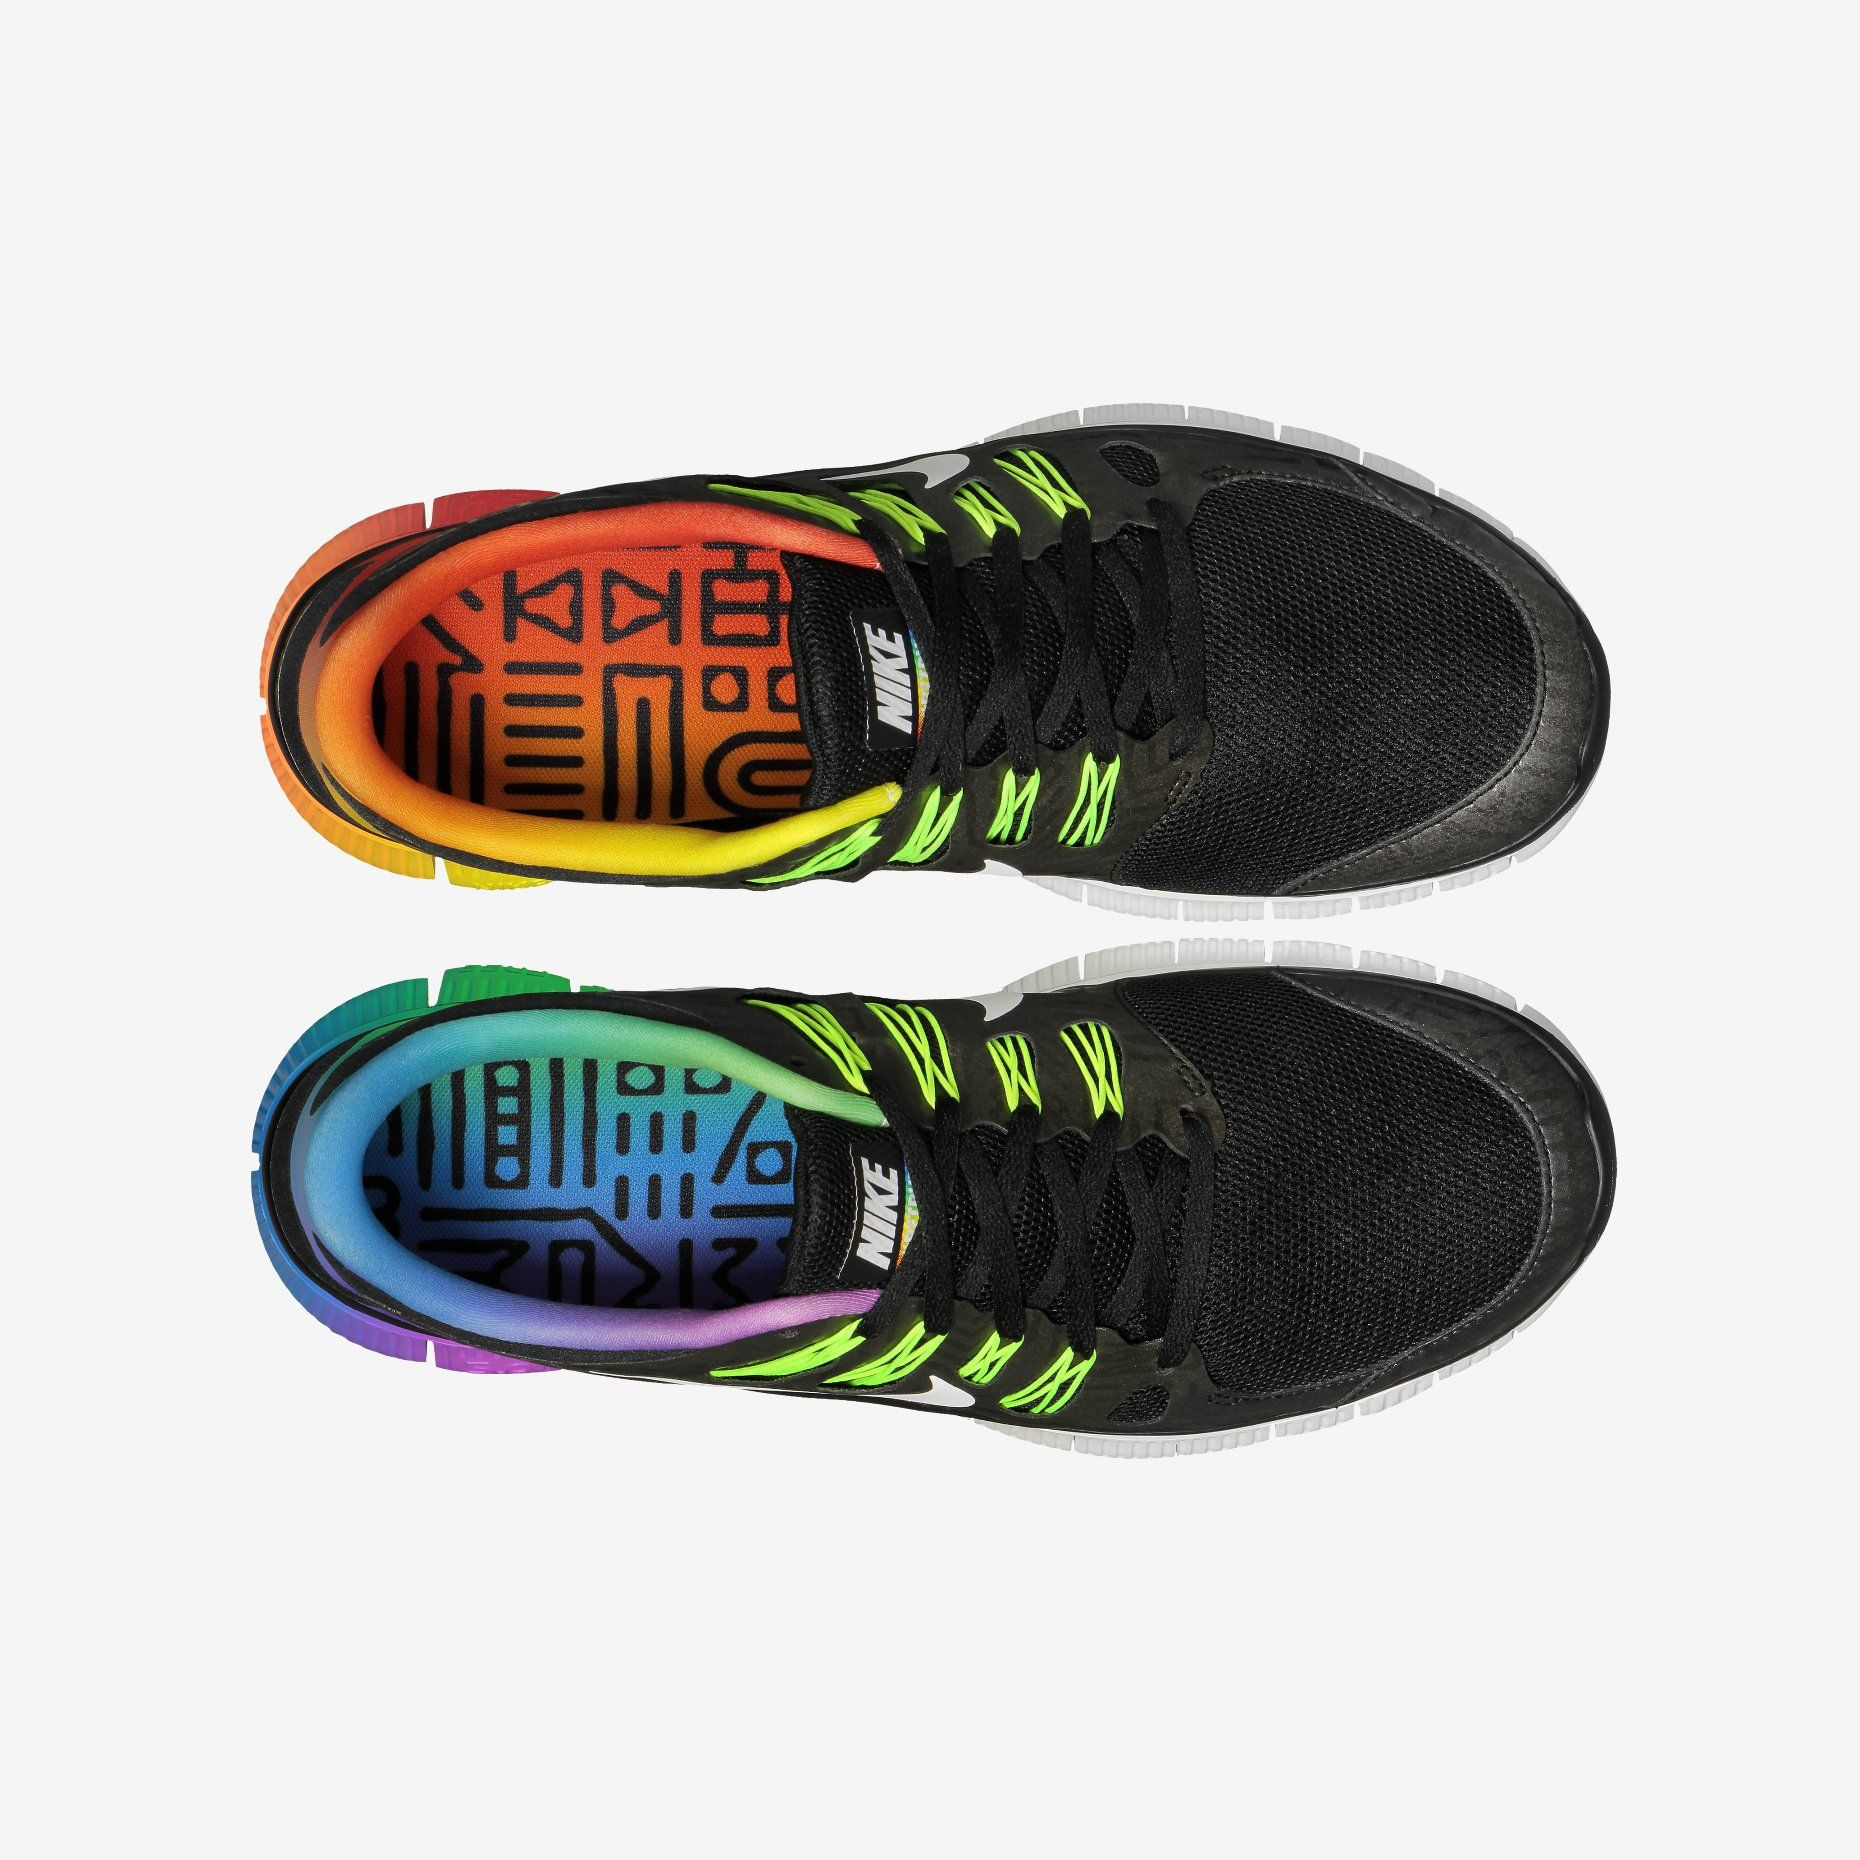 nike free run 5.0 ext sp #betrue shoes